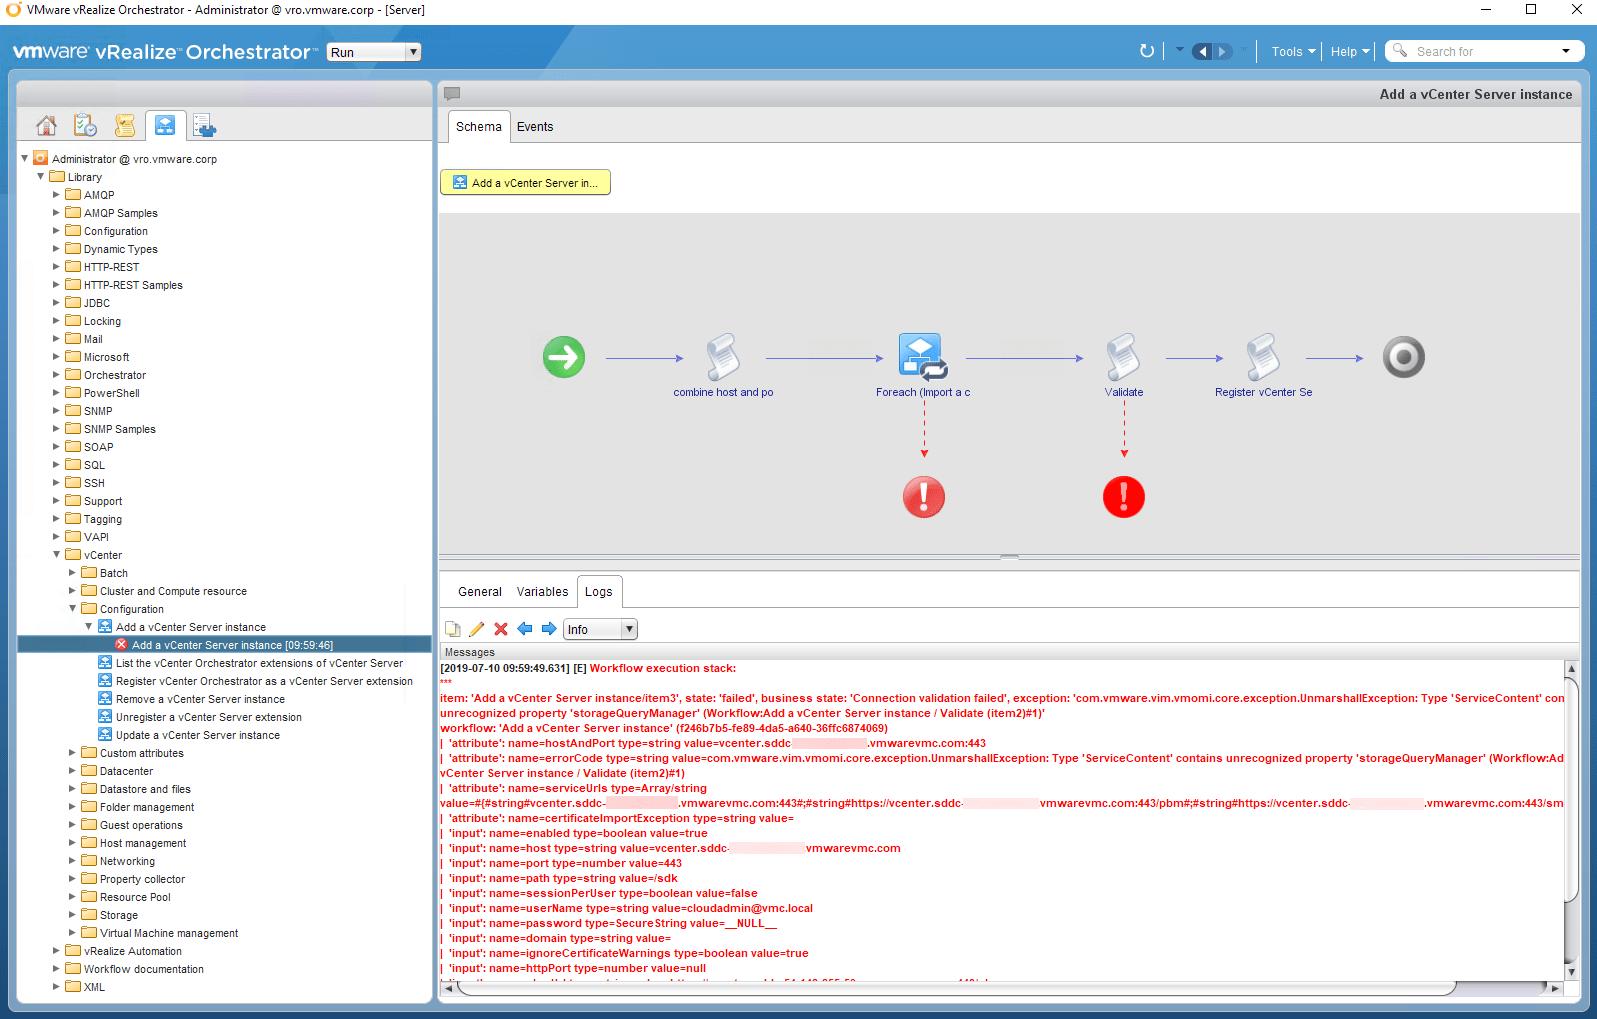 Configuring Standalone vRealize Orchestrator with VMware